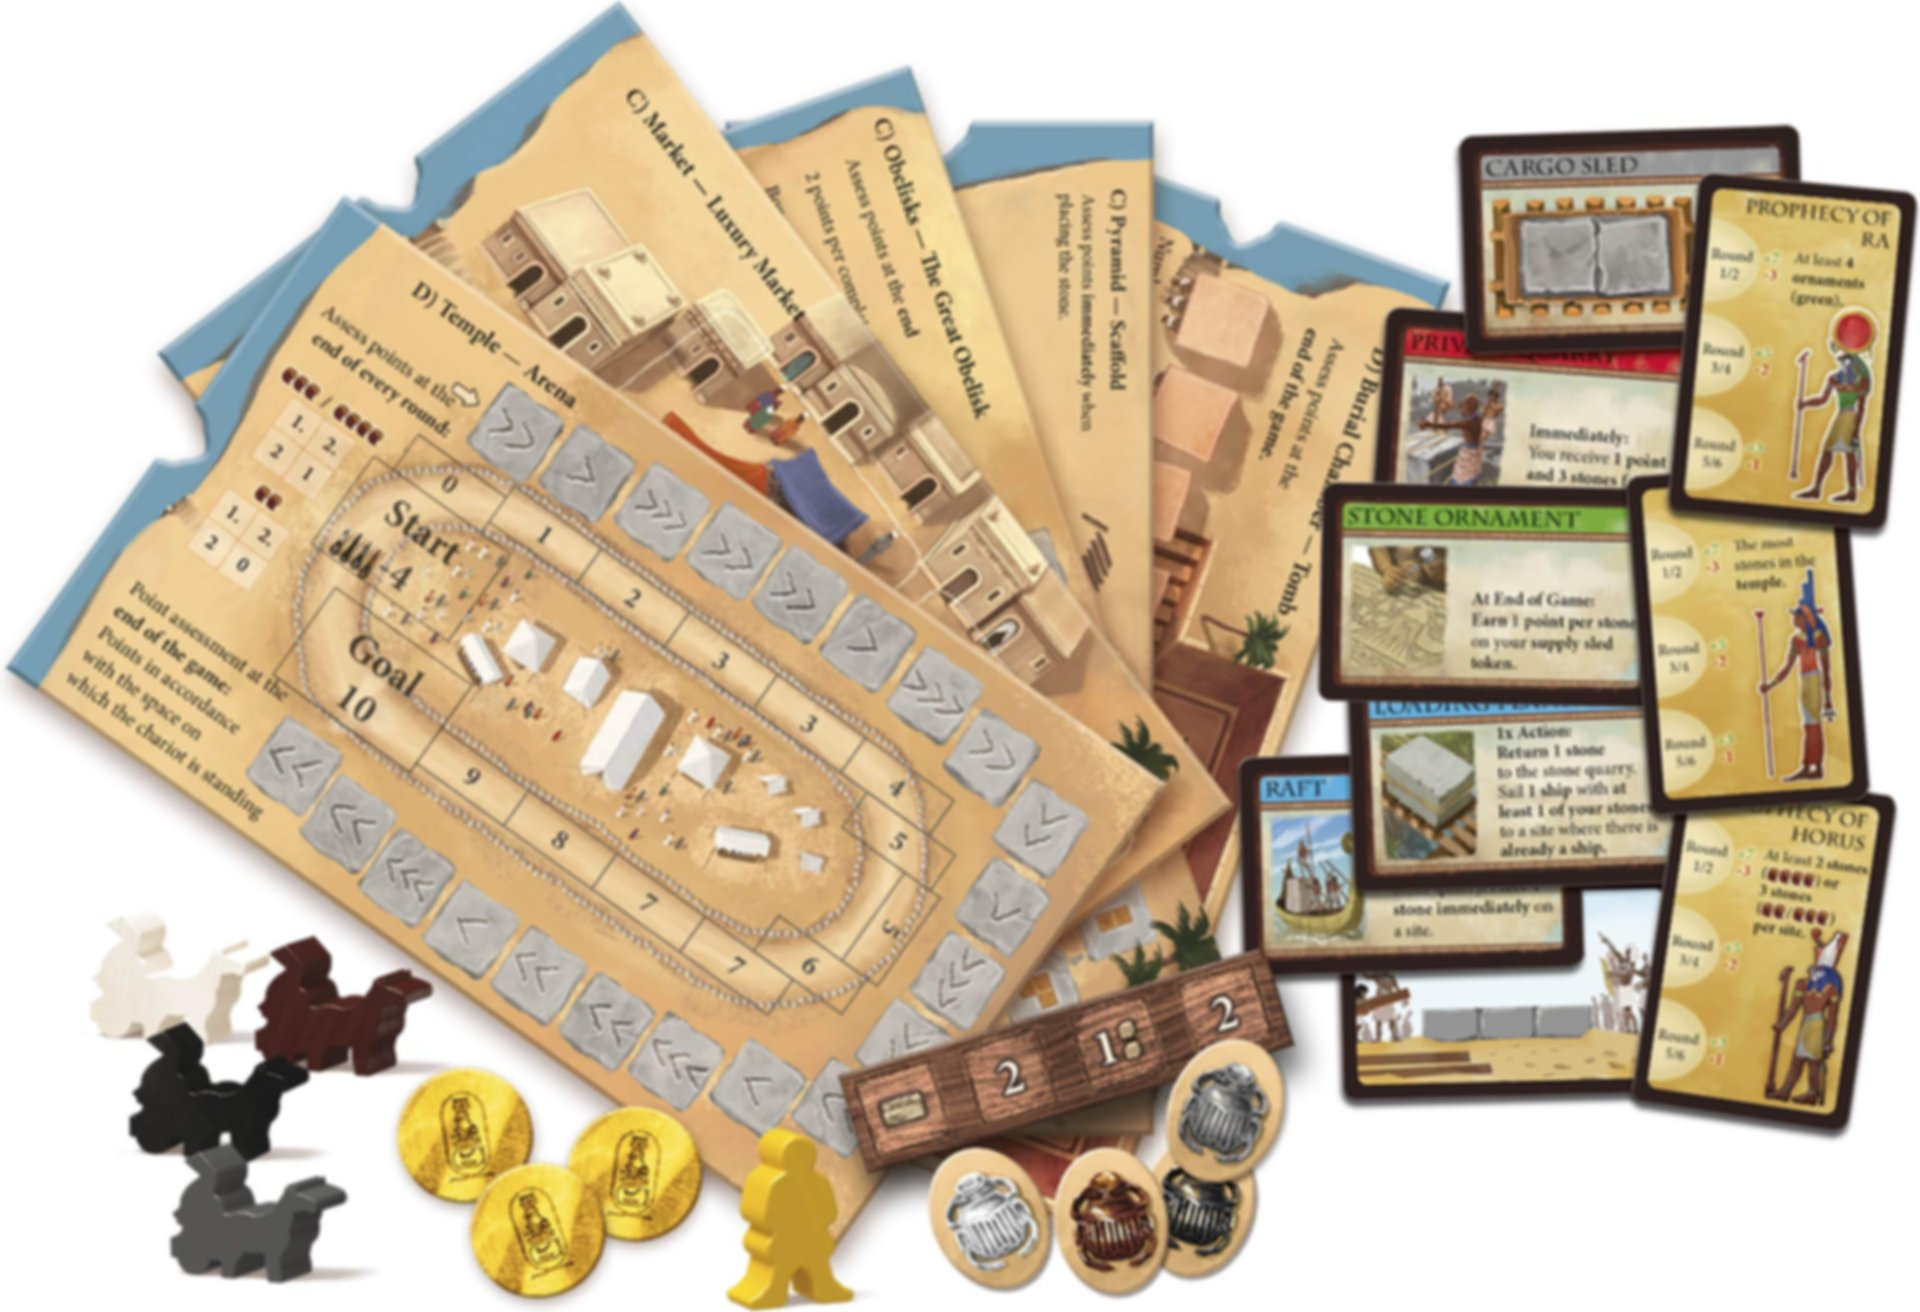 Imhotep: A New Dynasty components